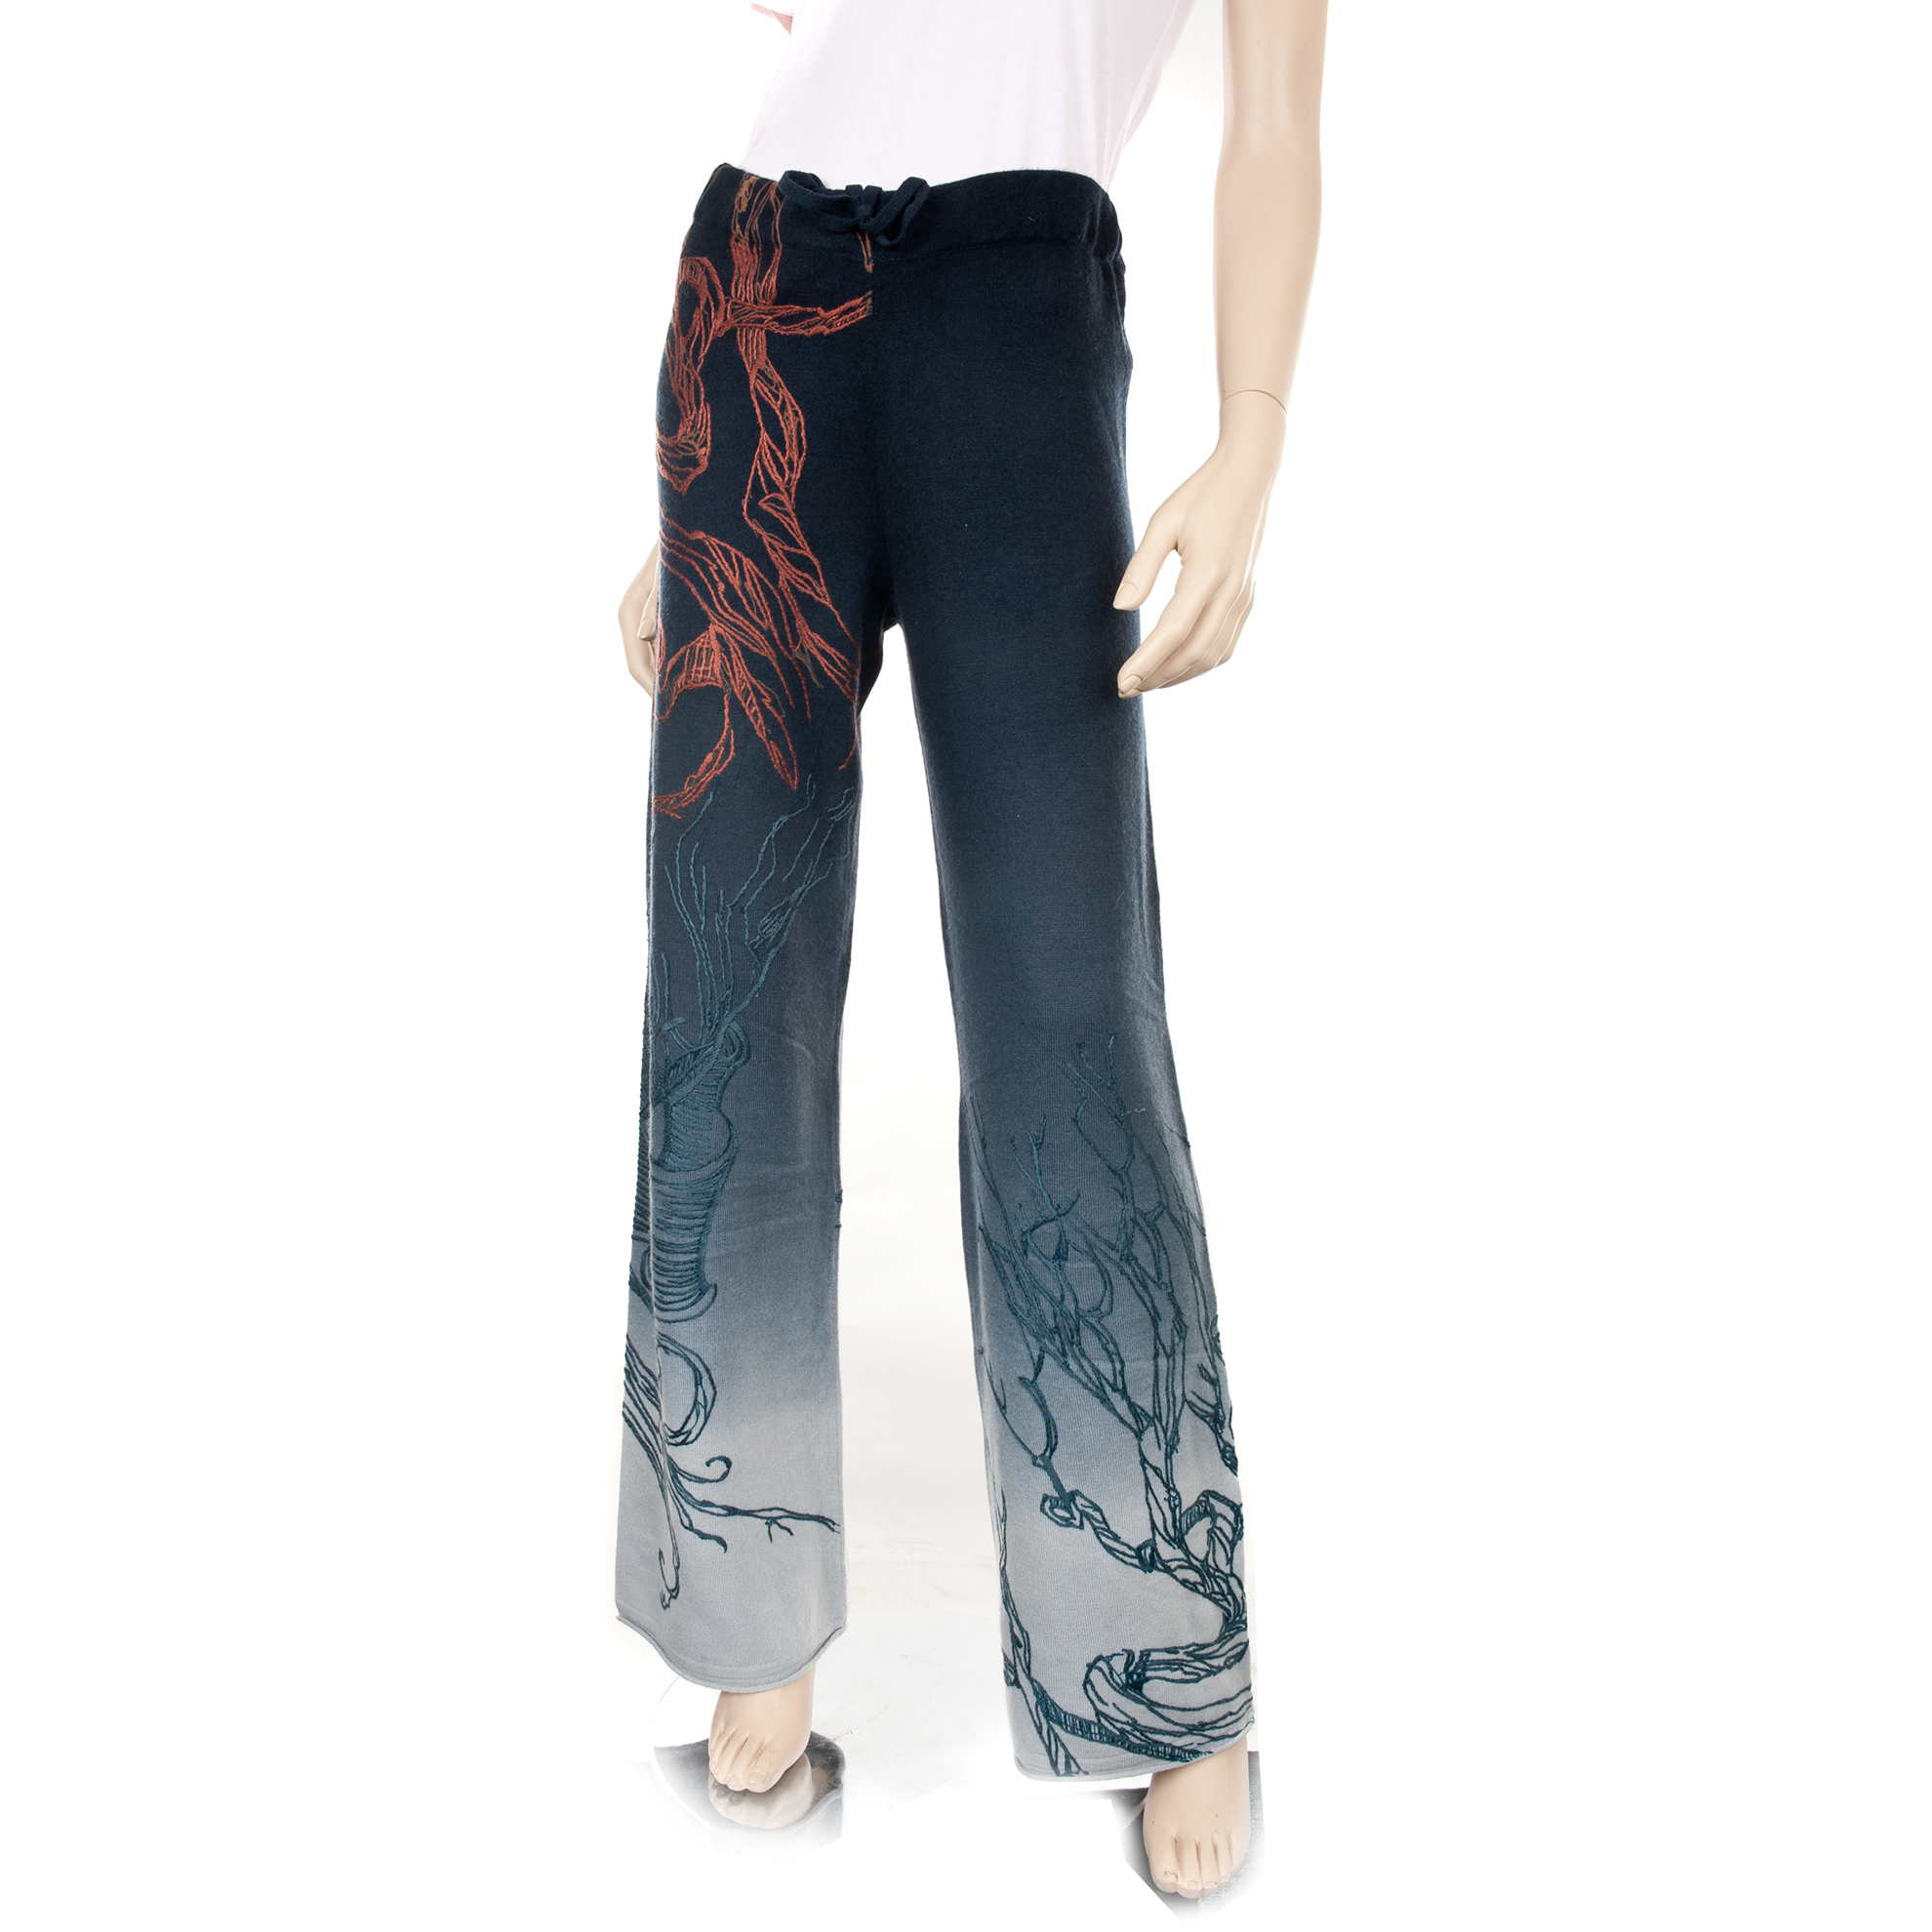 RAW 7 CM3602-MIST Raw 7 Ladies 100% Cashmere Pants Navy/Light Blue with Abstract Nature Embroidery